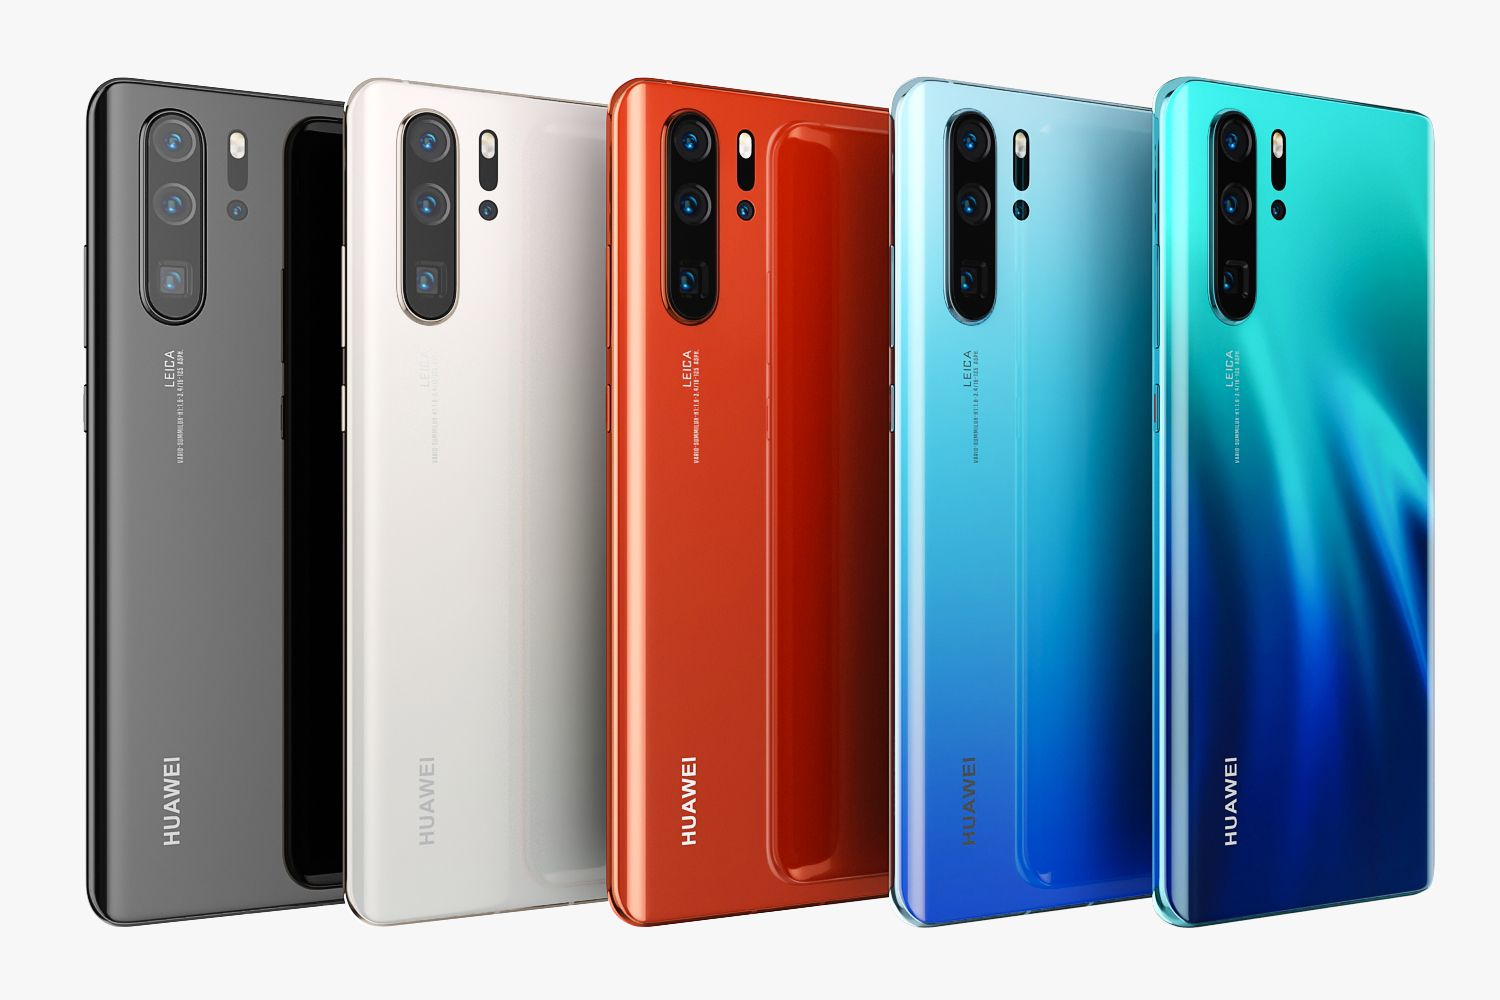 Huawei P30 Pro All Colors Huawei All The Colors Color